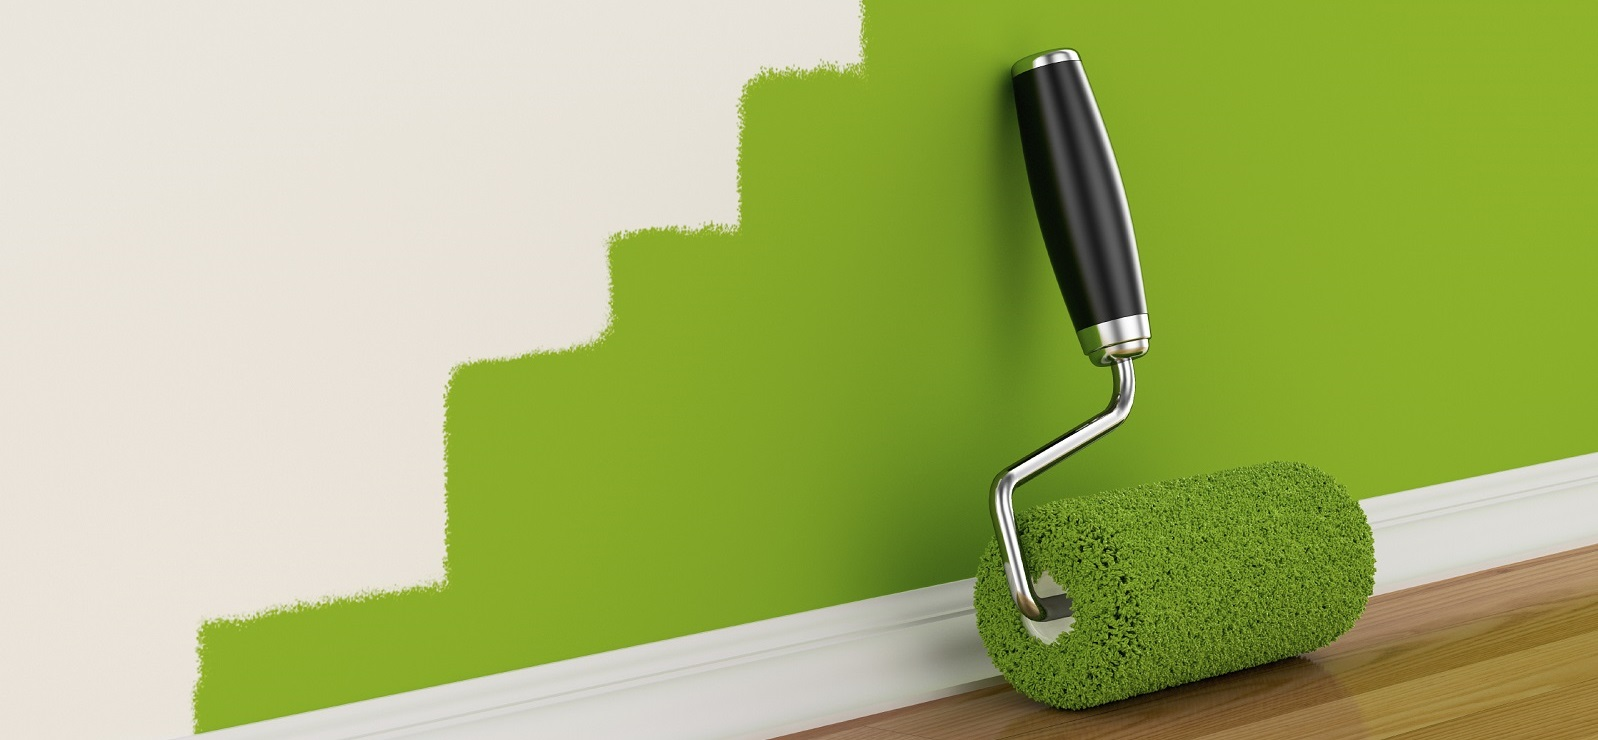 SingaporePainters  Home Painting Singapore  Painting Services